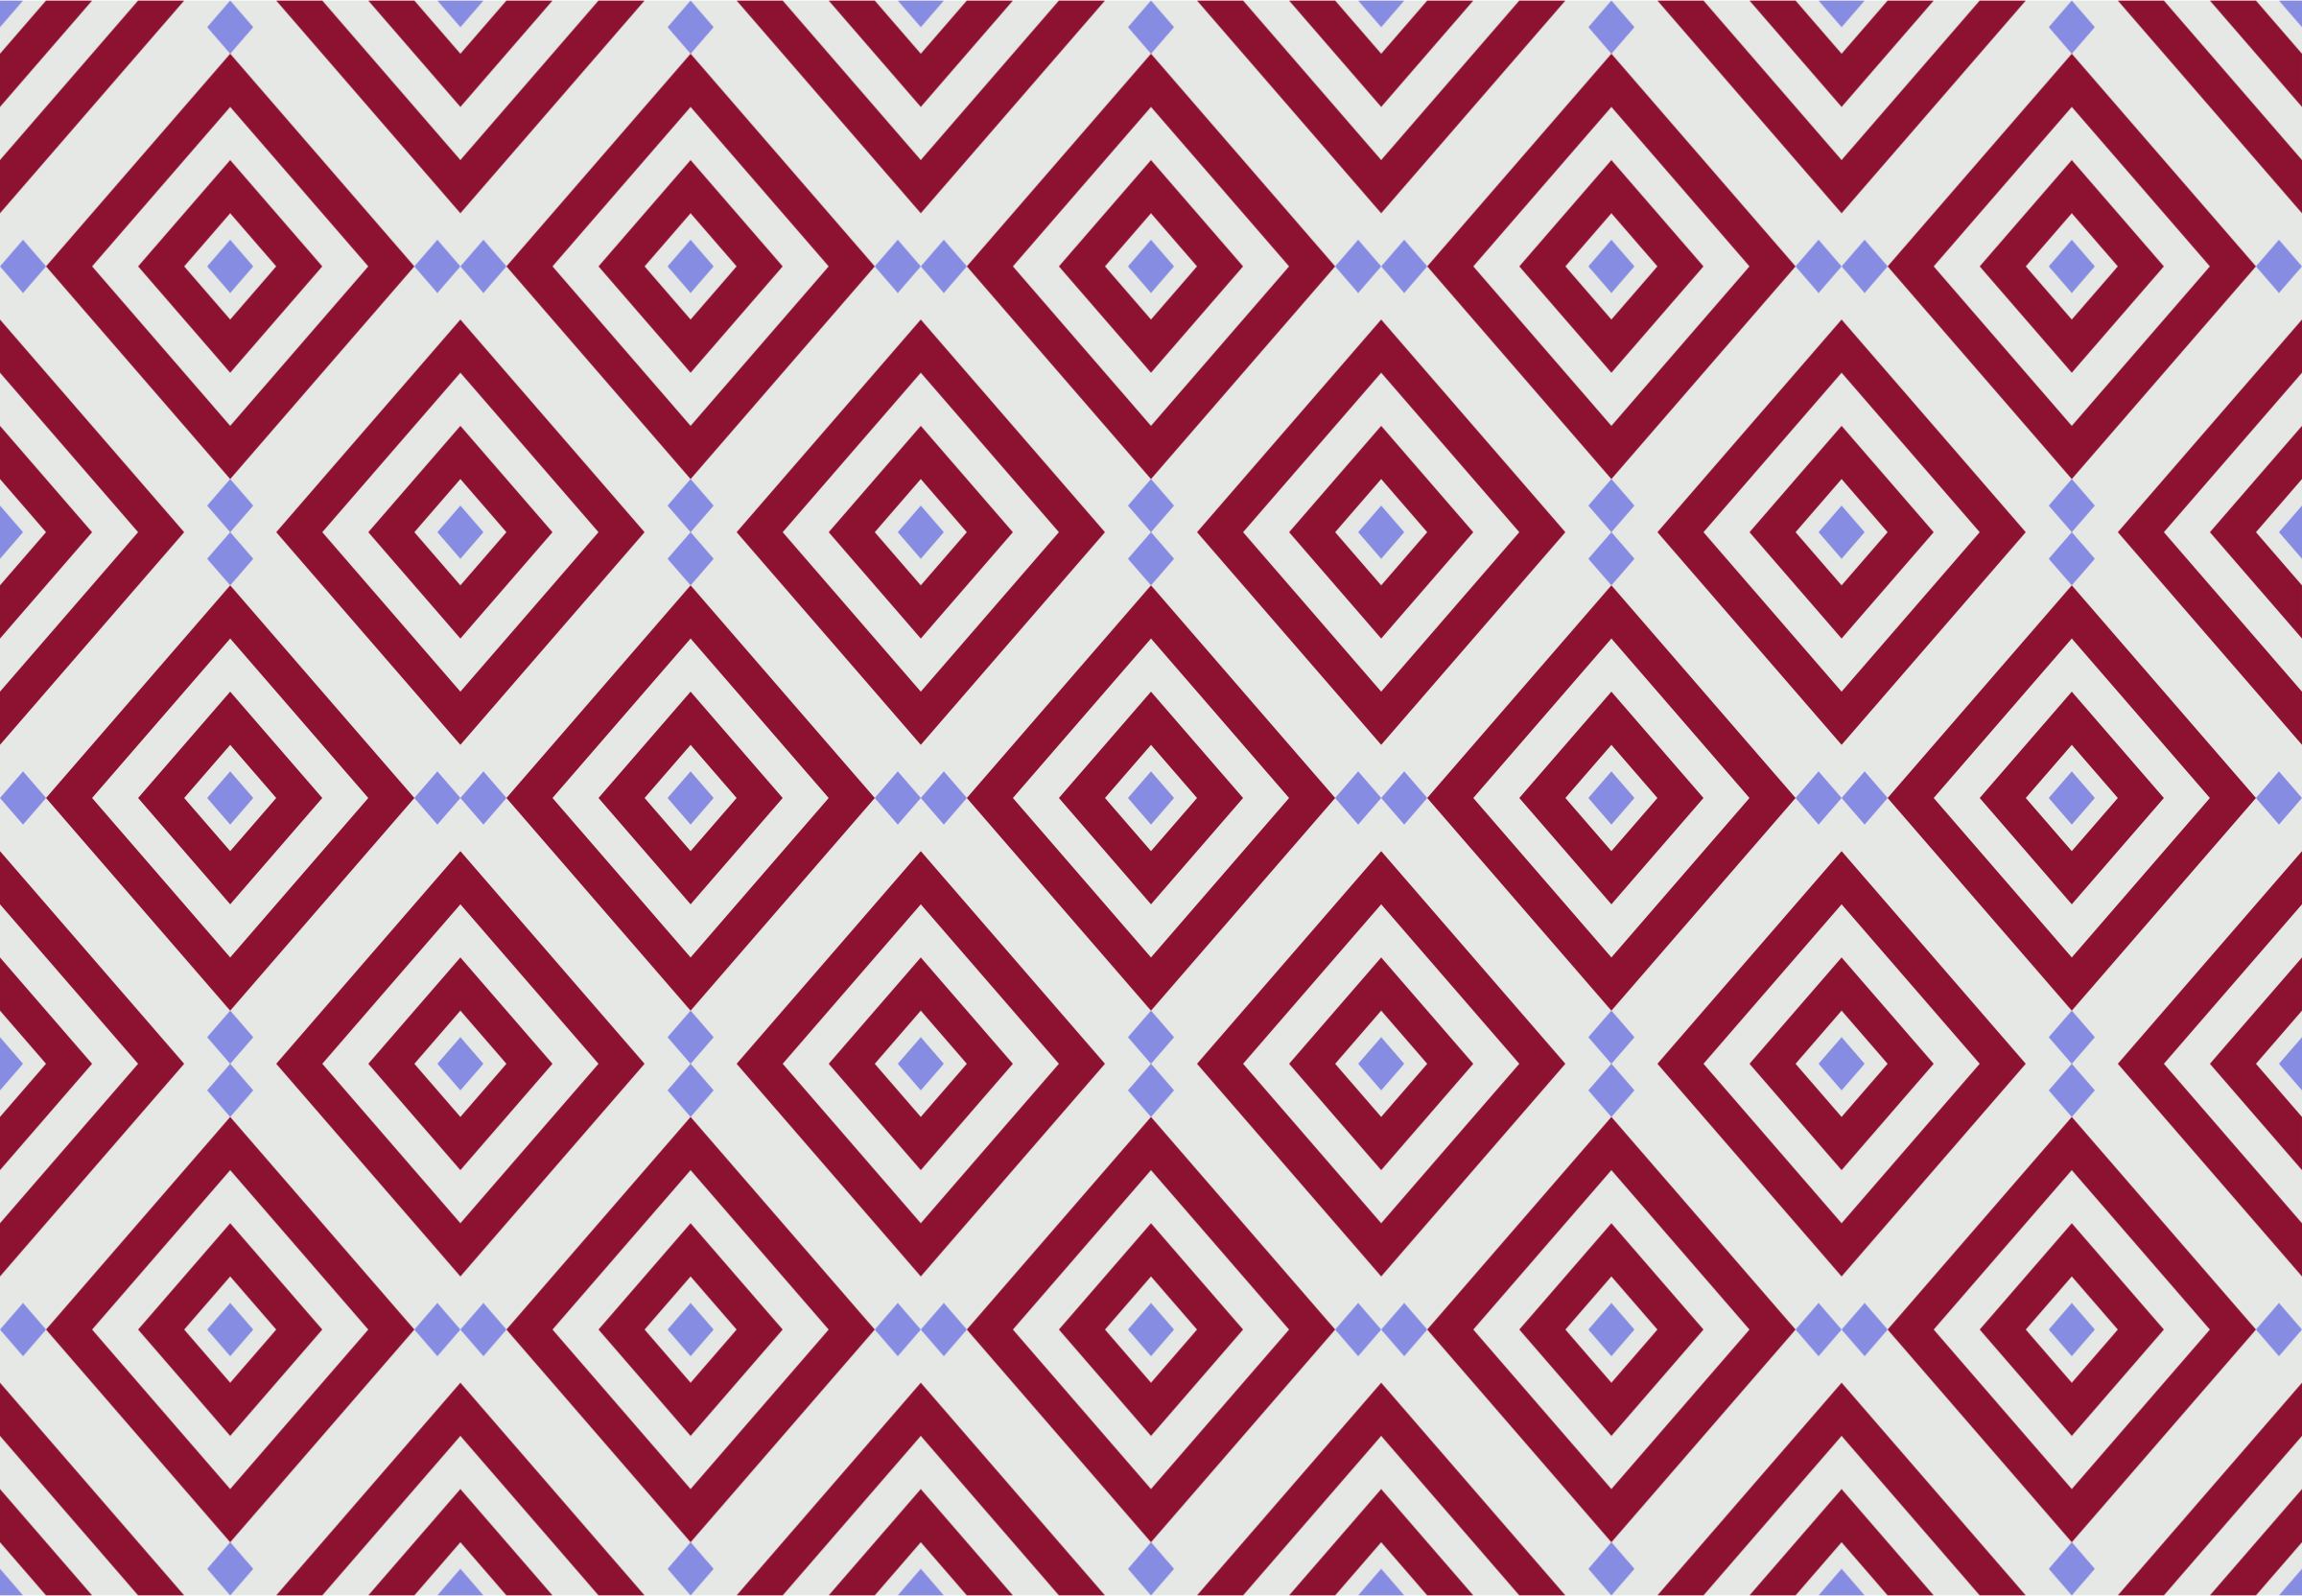 Background pattern 239 (colour 2) by Firkin